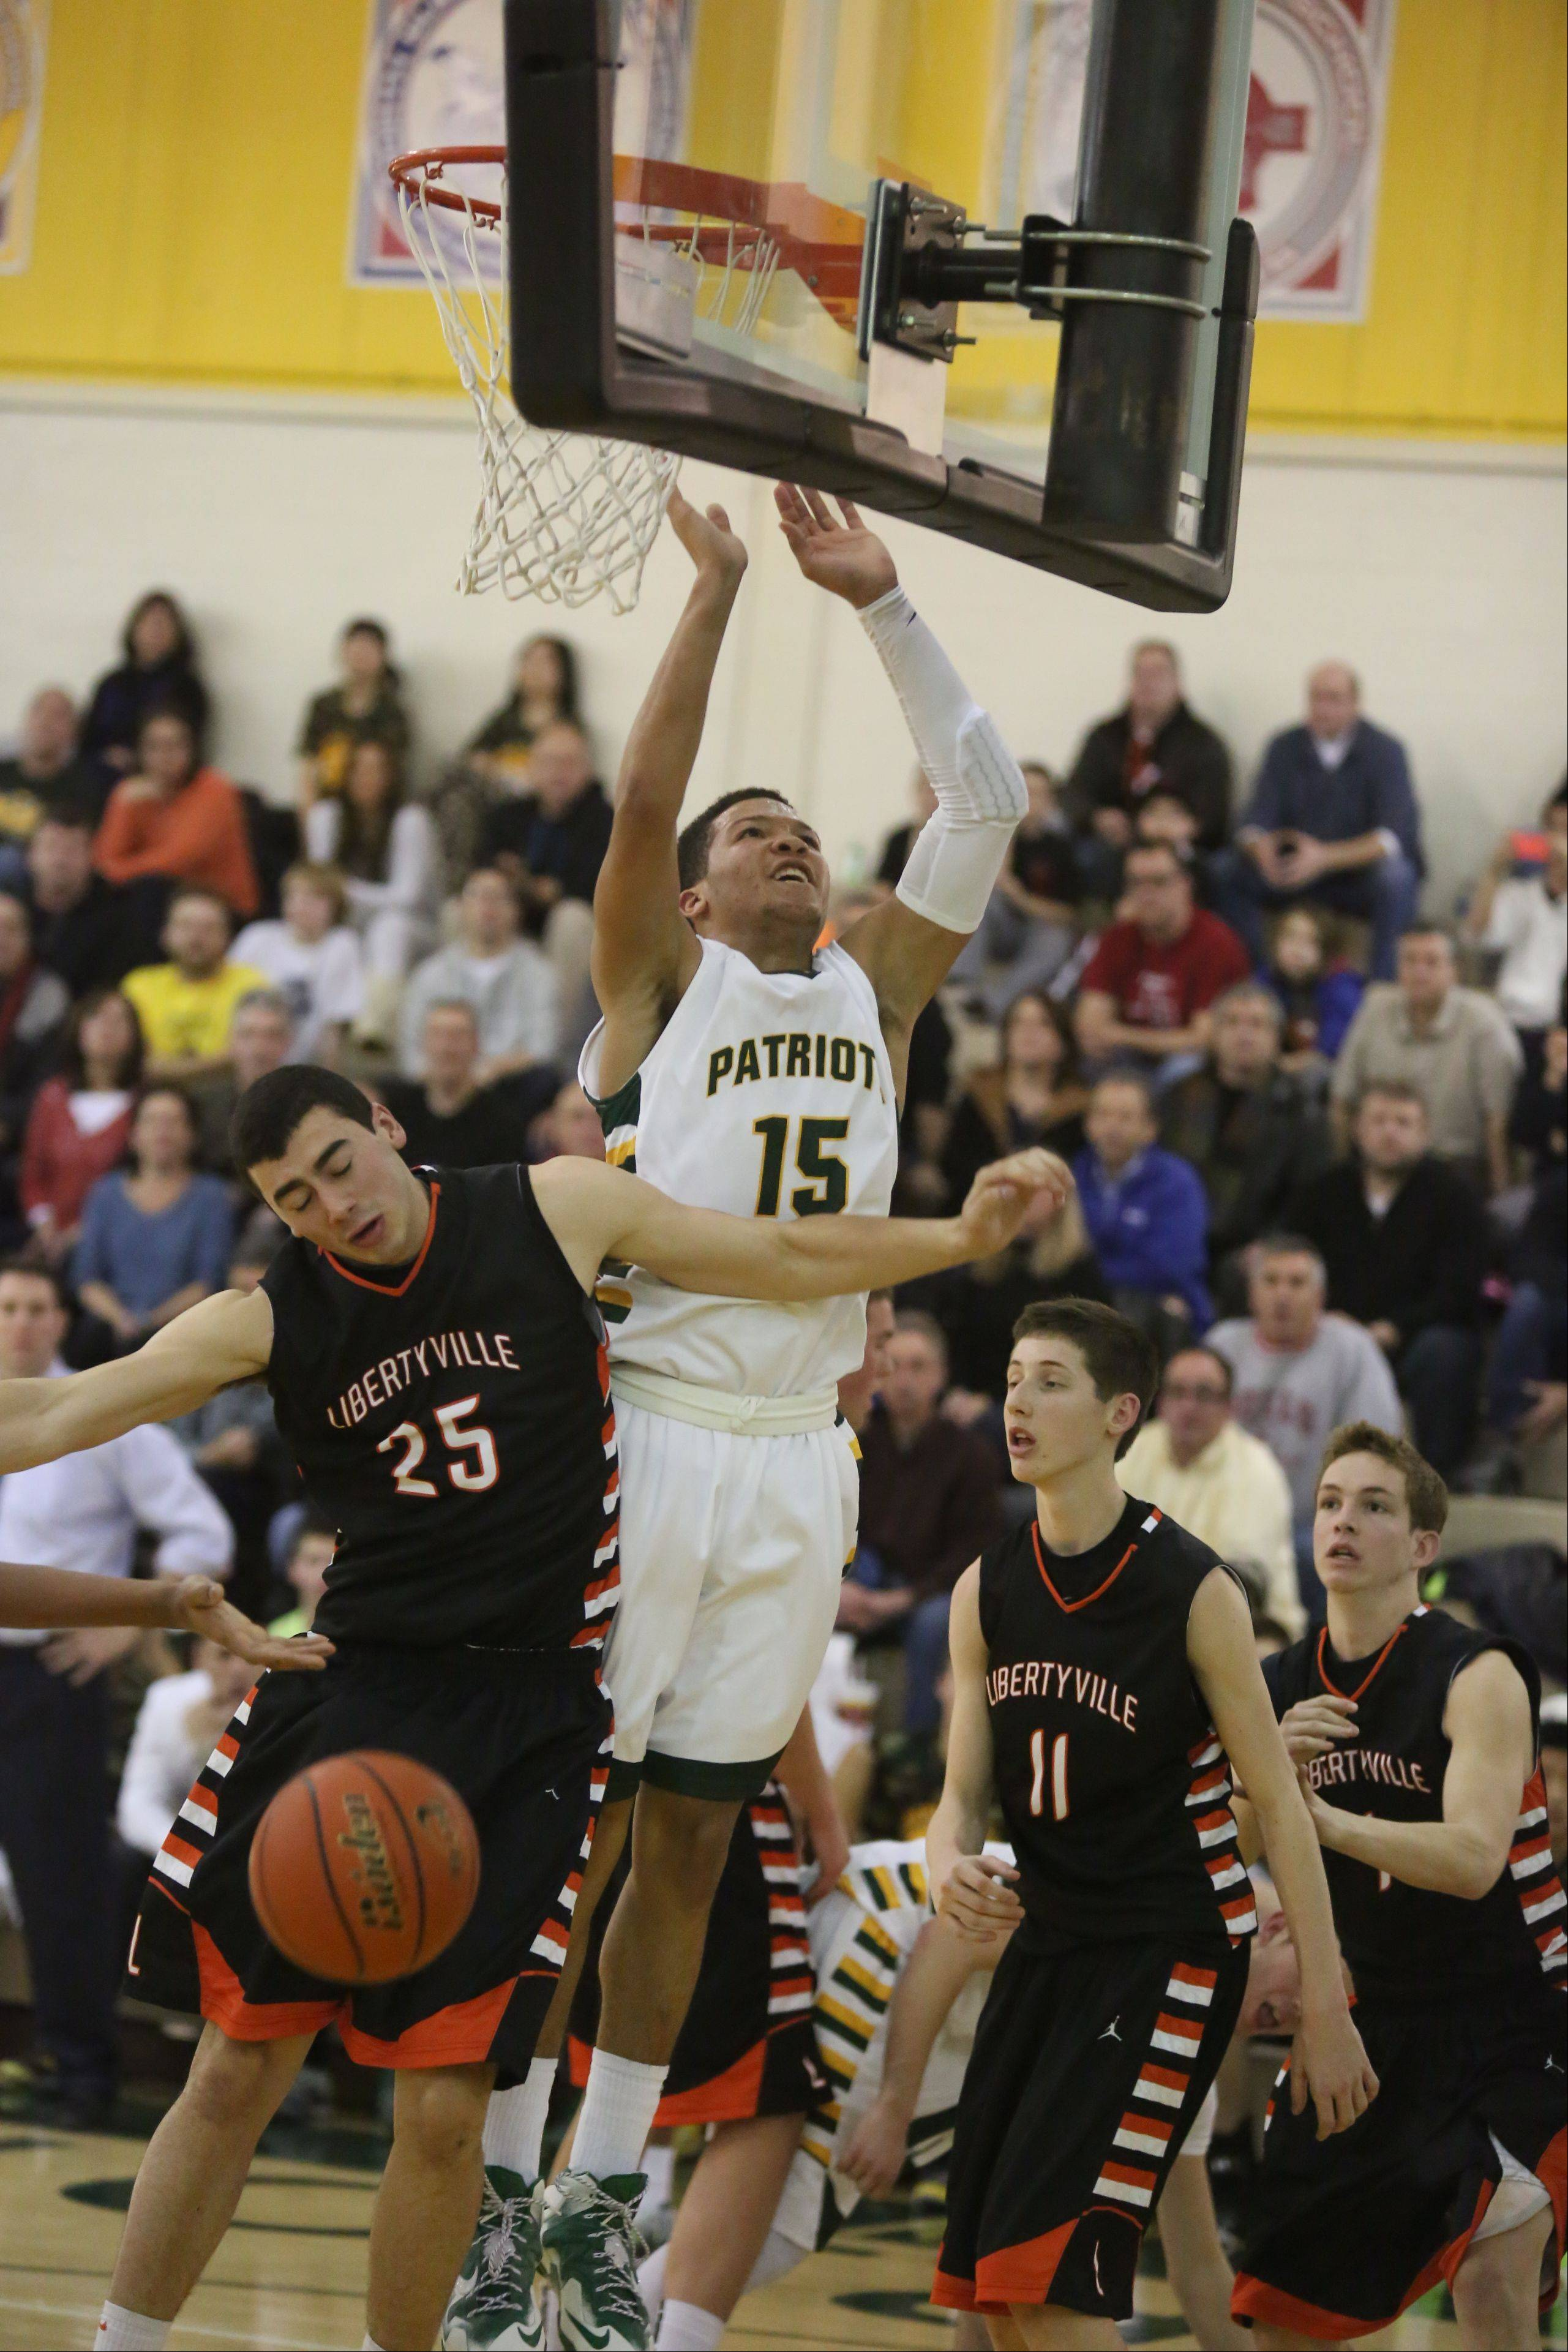 Images from the Libertyville at Stevenson boys basketball game on Friday, January 24 in Lincolnshire.